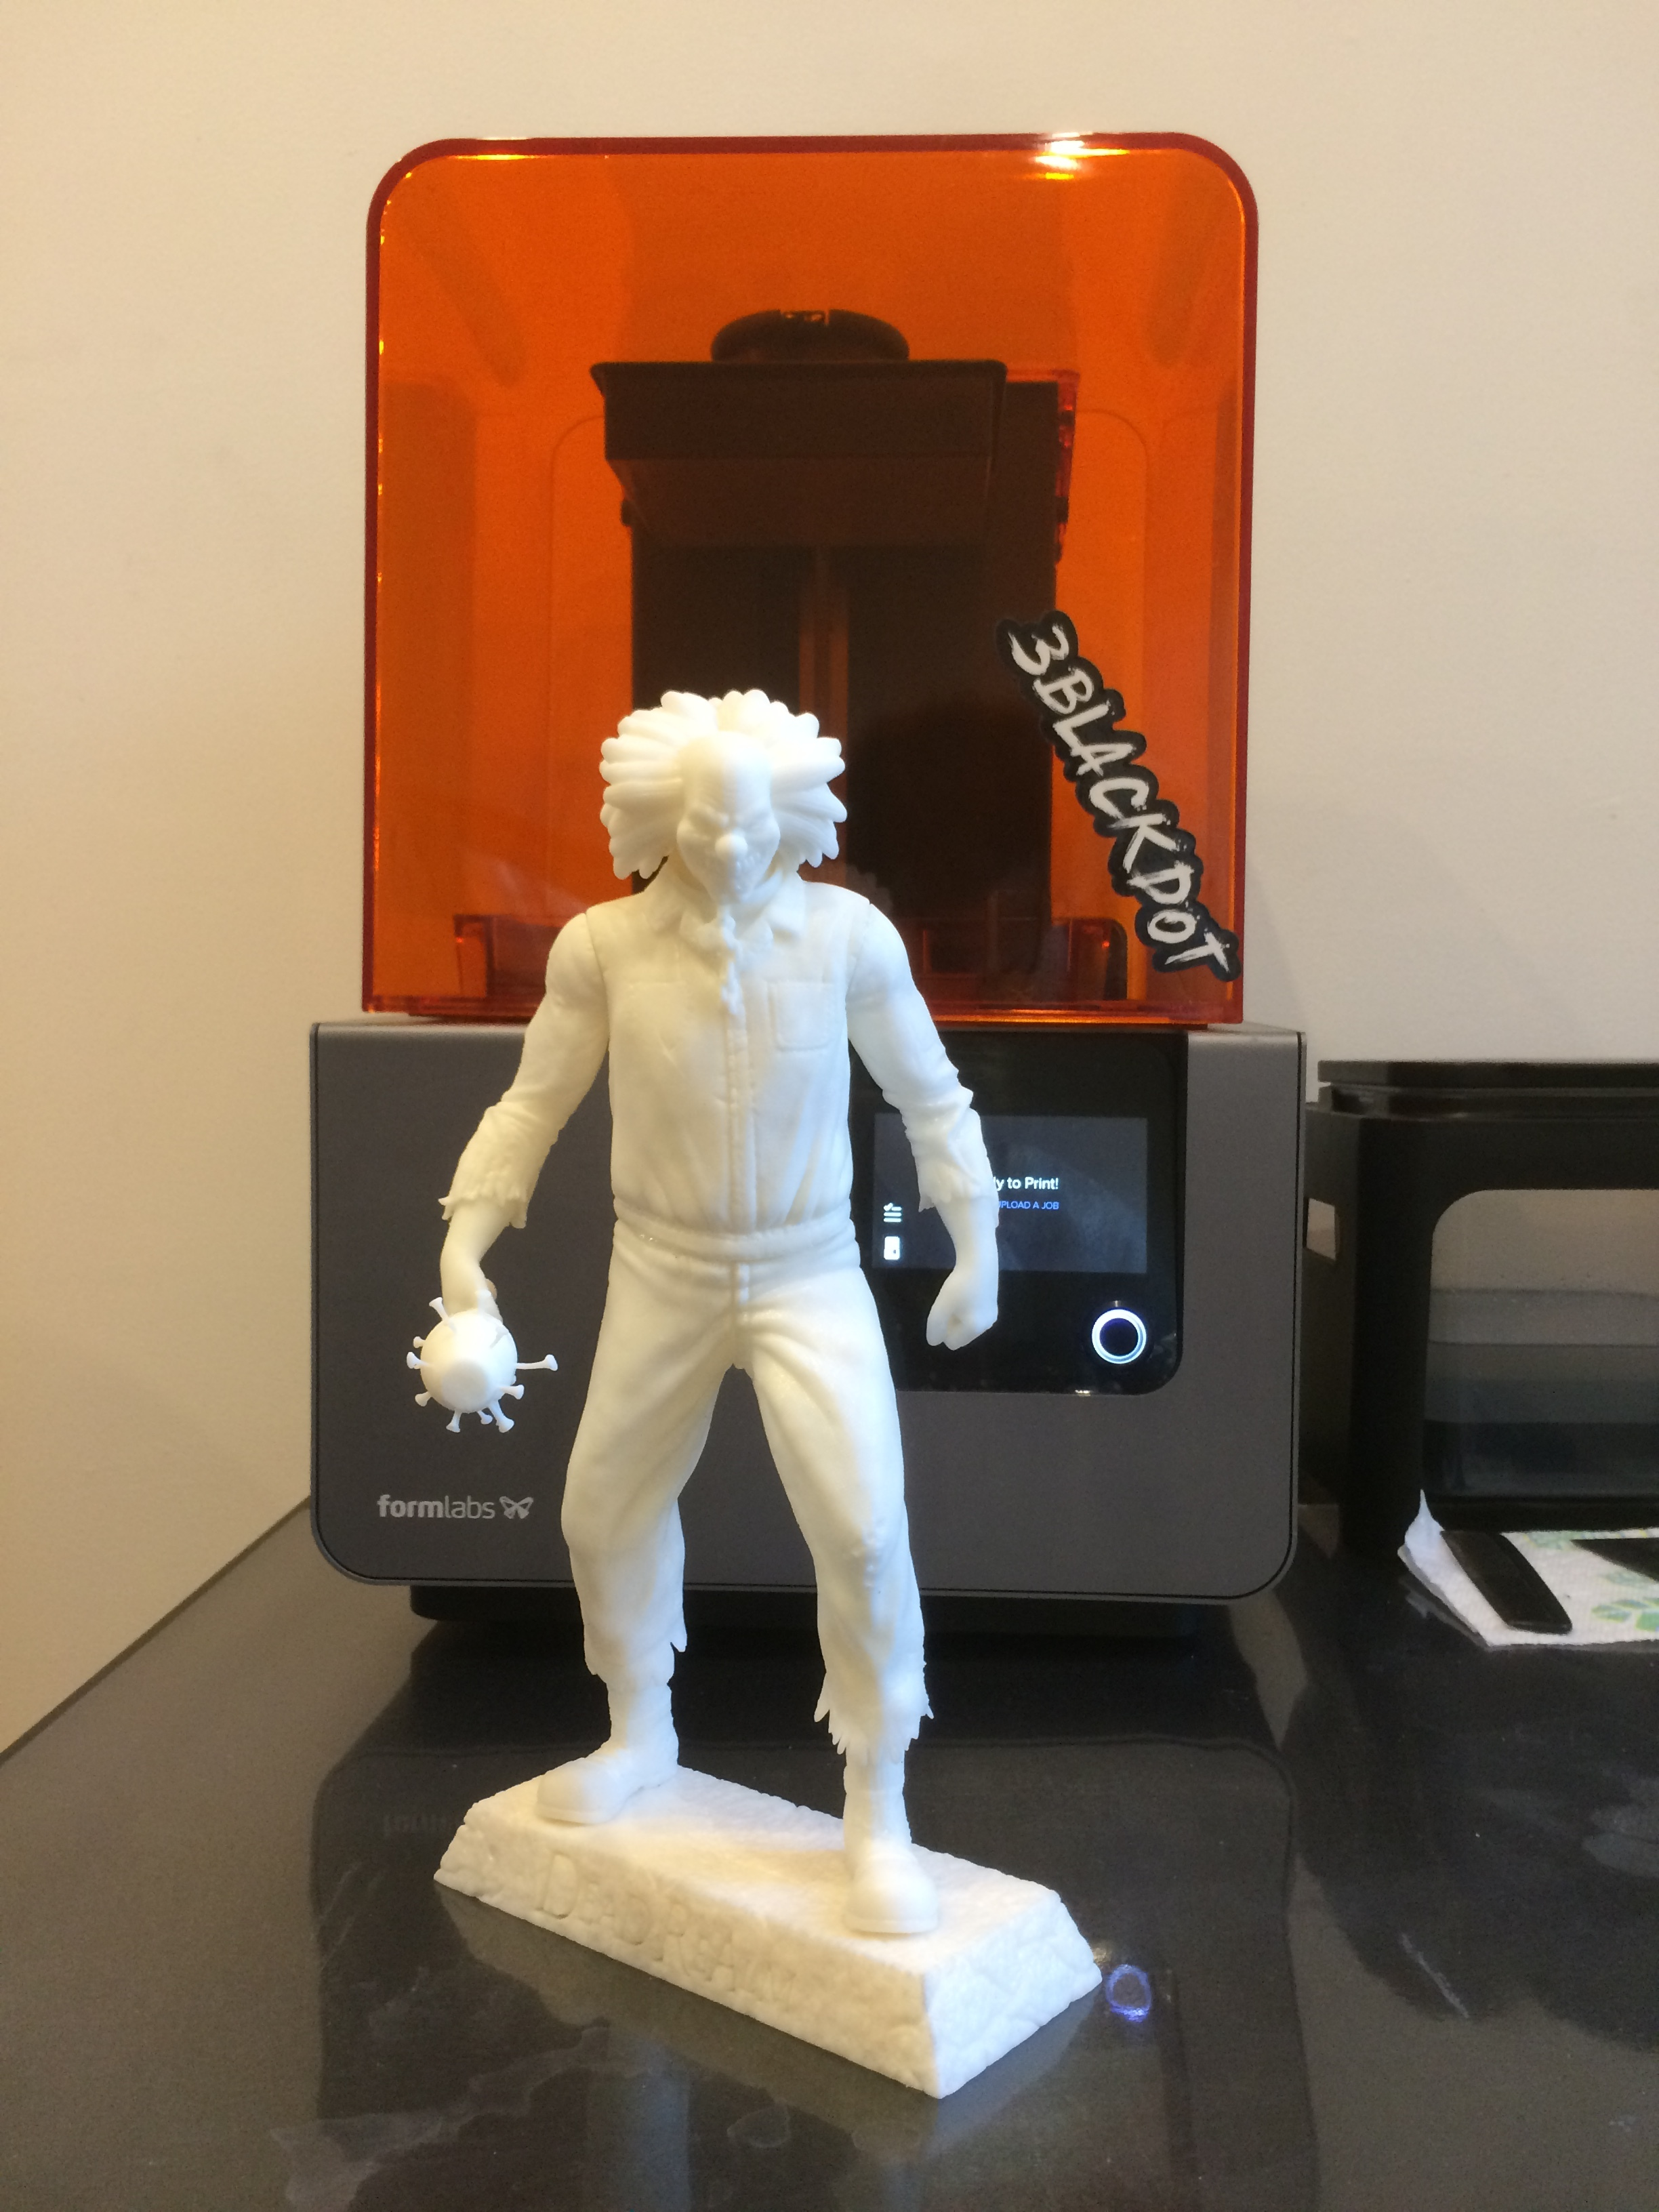 Learn techniques for Large Scale 3D Printing!